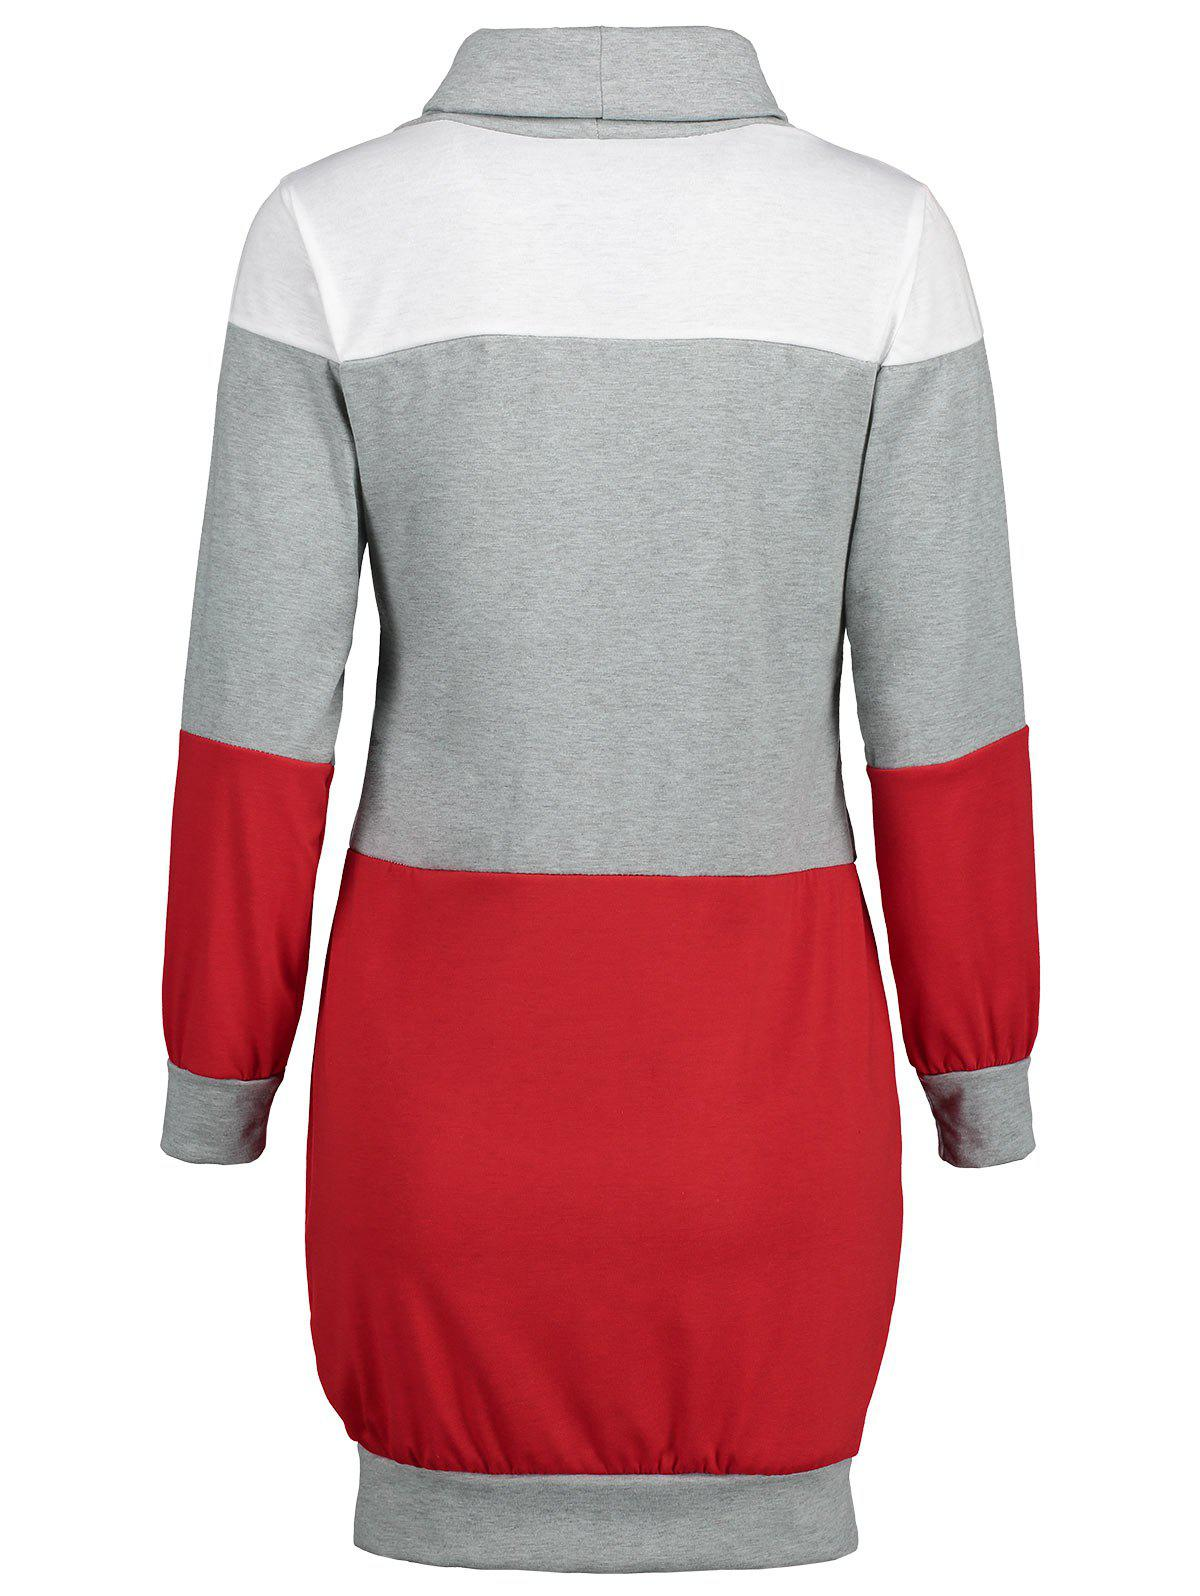 Color Block Turtleneck Bodycon Mini Dress - GRAY L